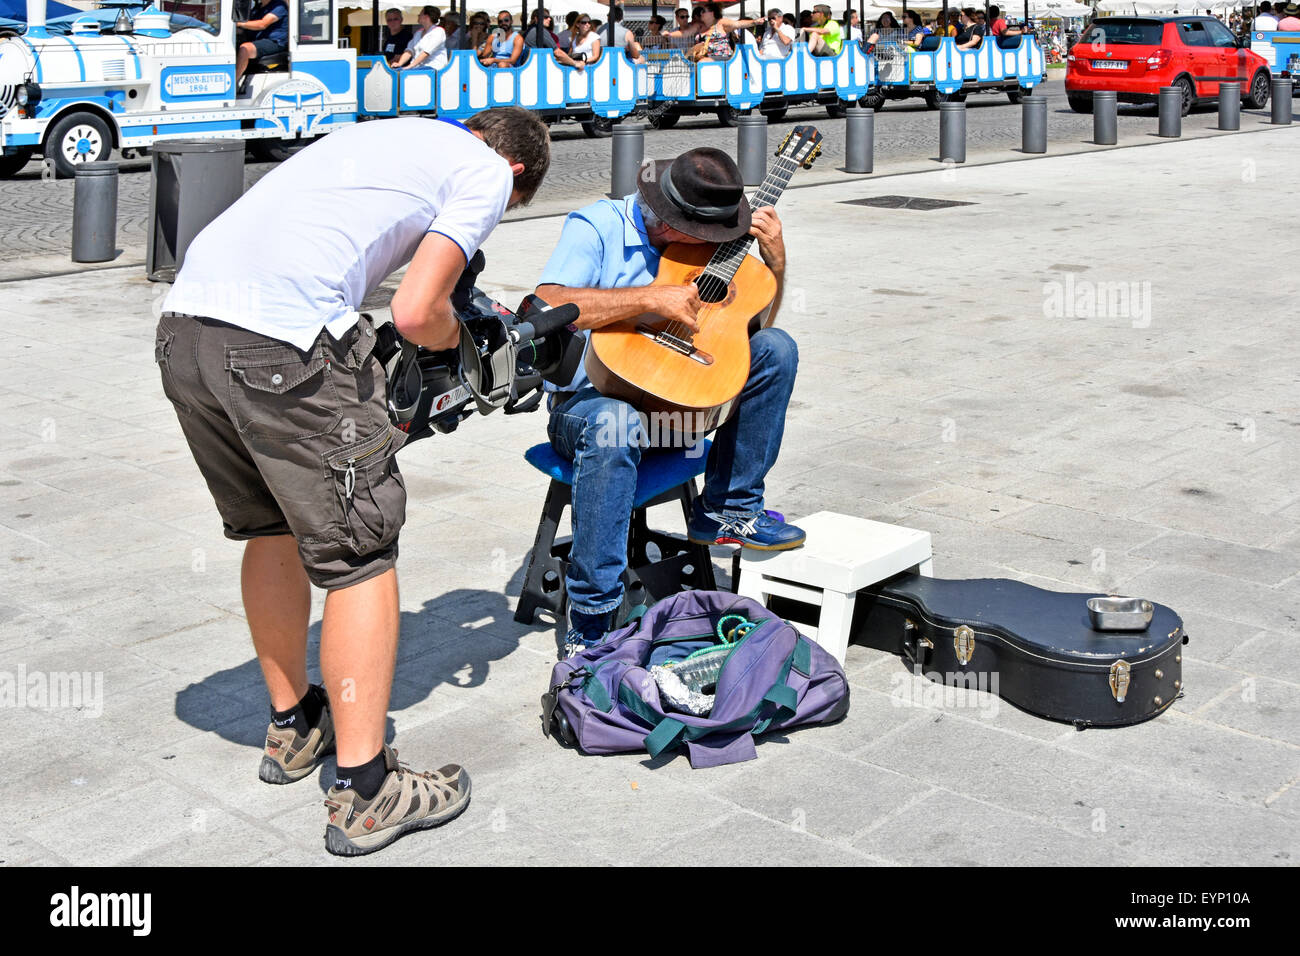 Marseille Vieux Port Marseilles Provence South of France cameraman filming guitarist on French touristy waterfront - Stock Image